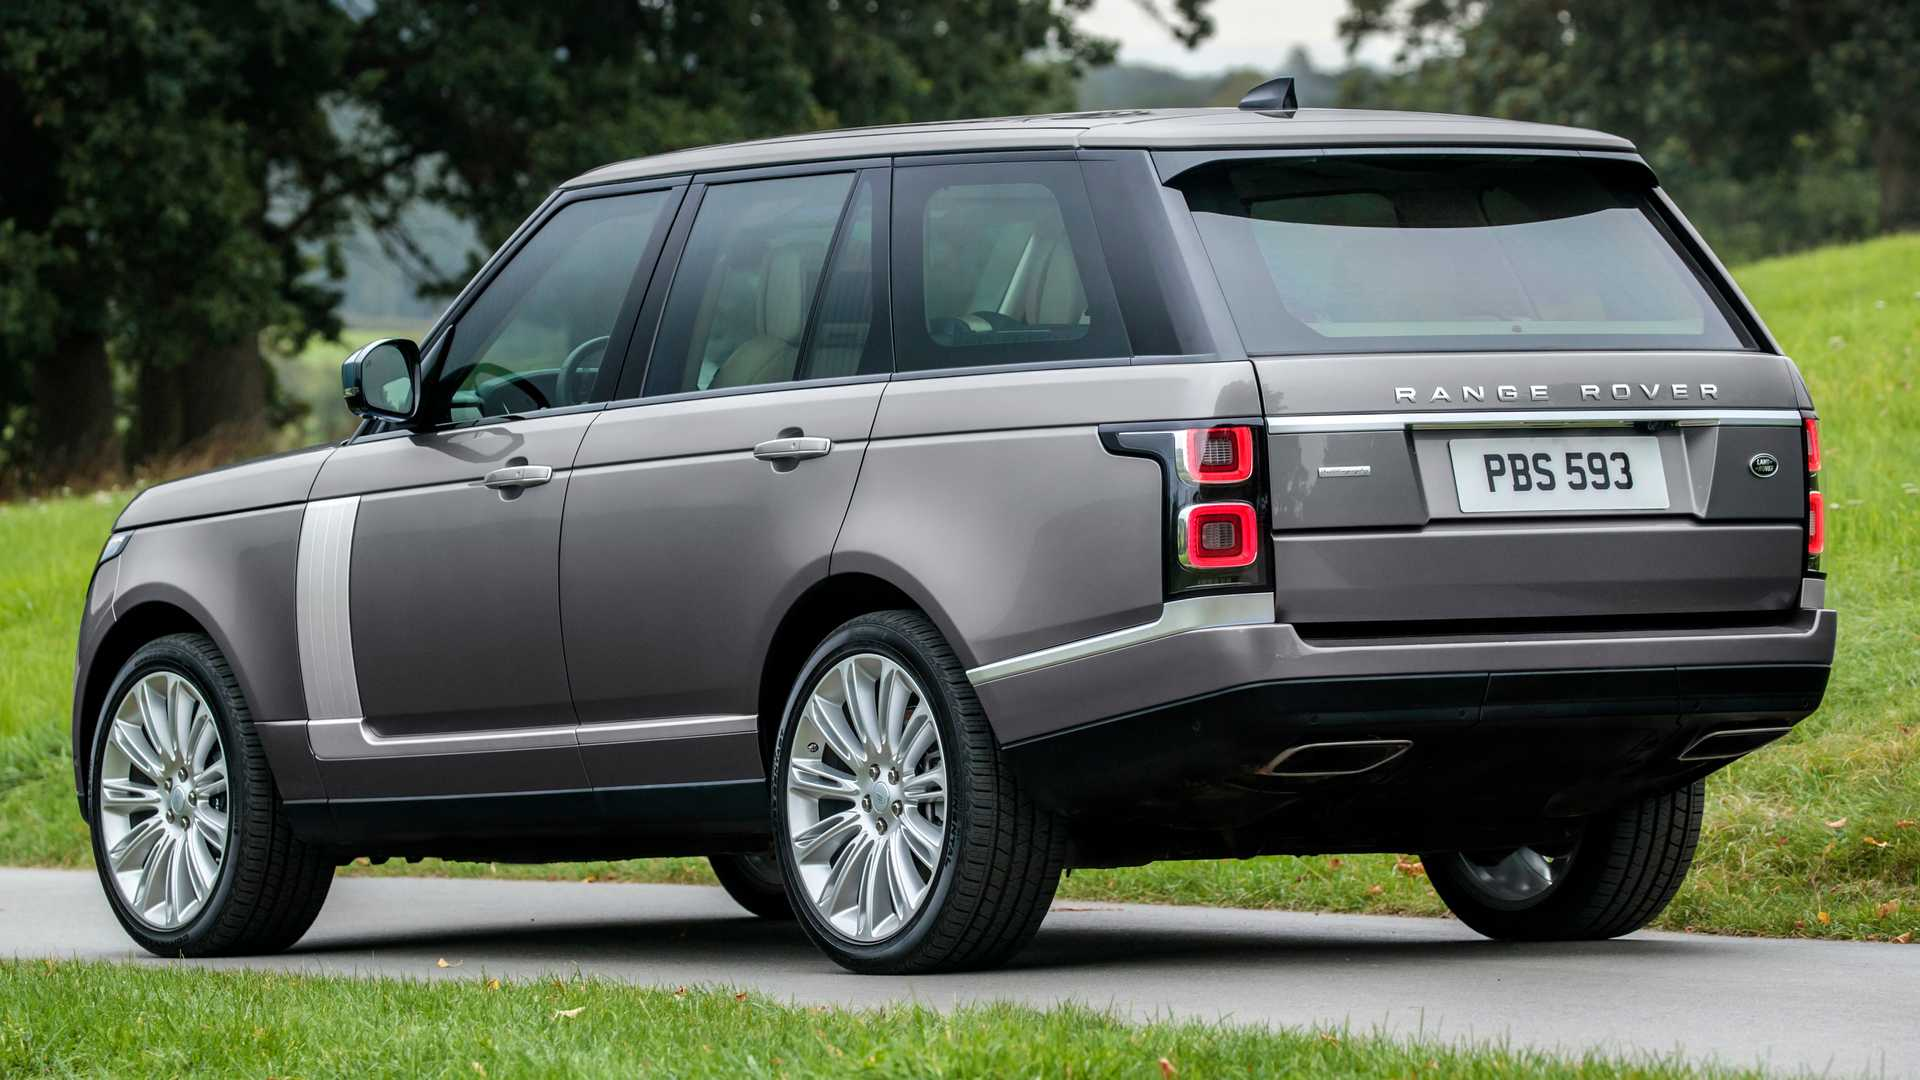 Range Rover Vogue - 4